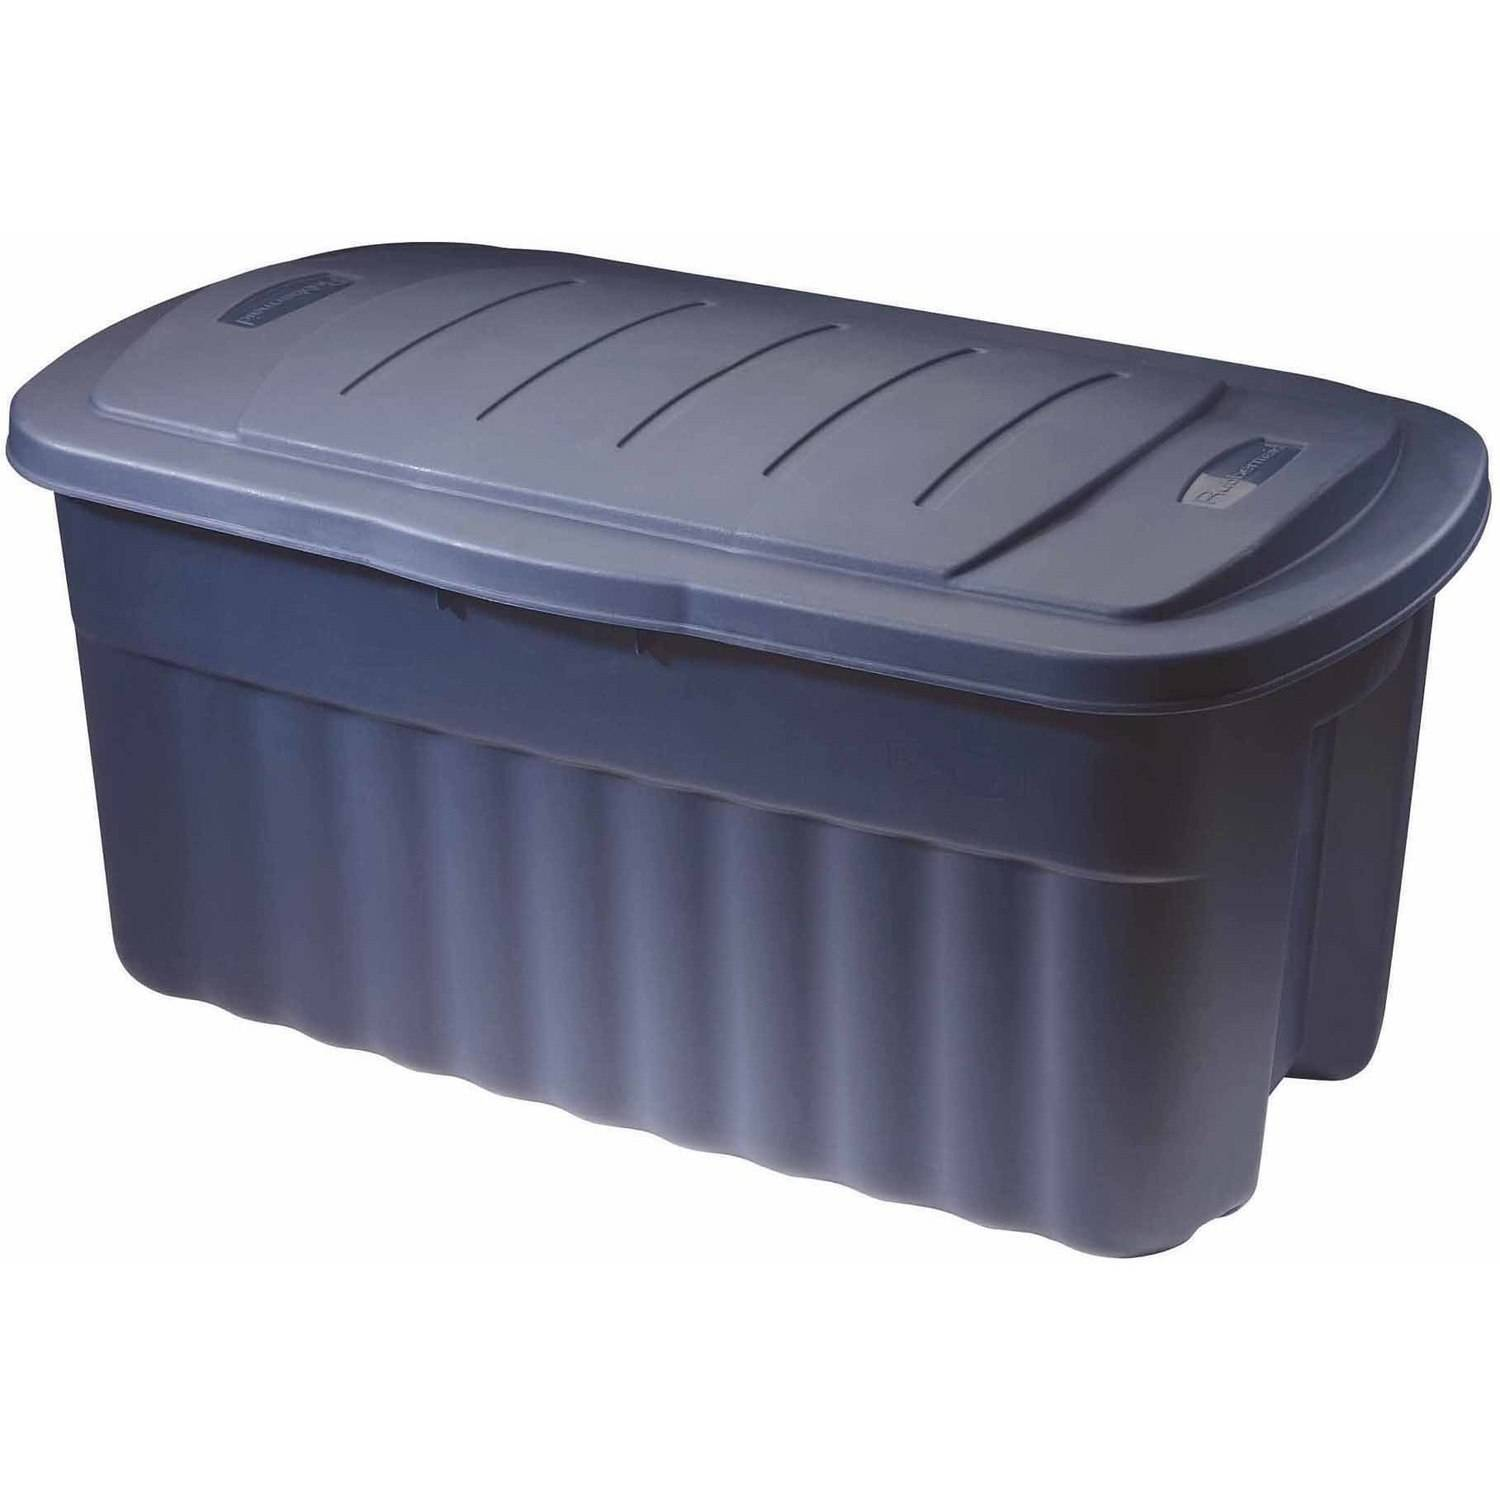 30 Quart Latching Lid Storage Tote Walmartcom